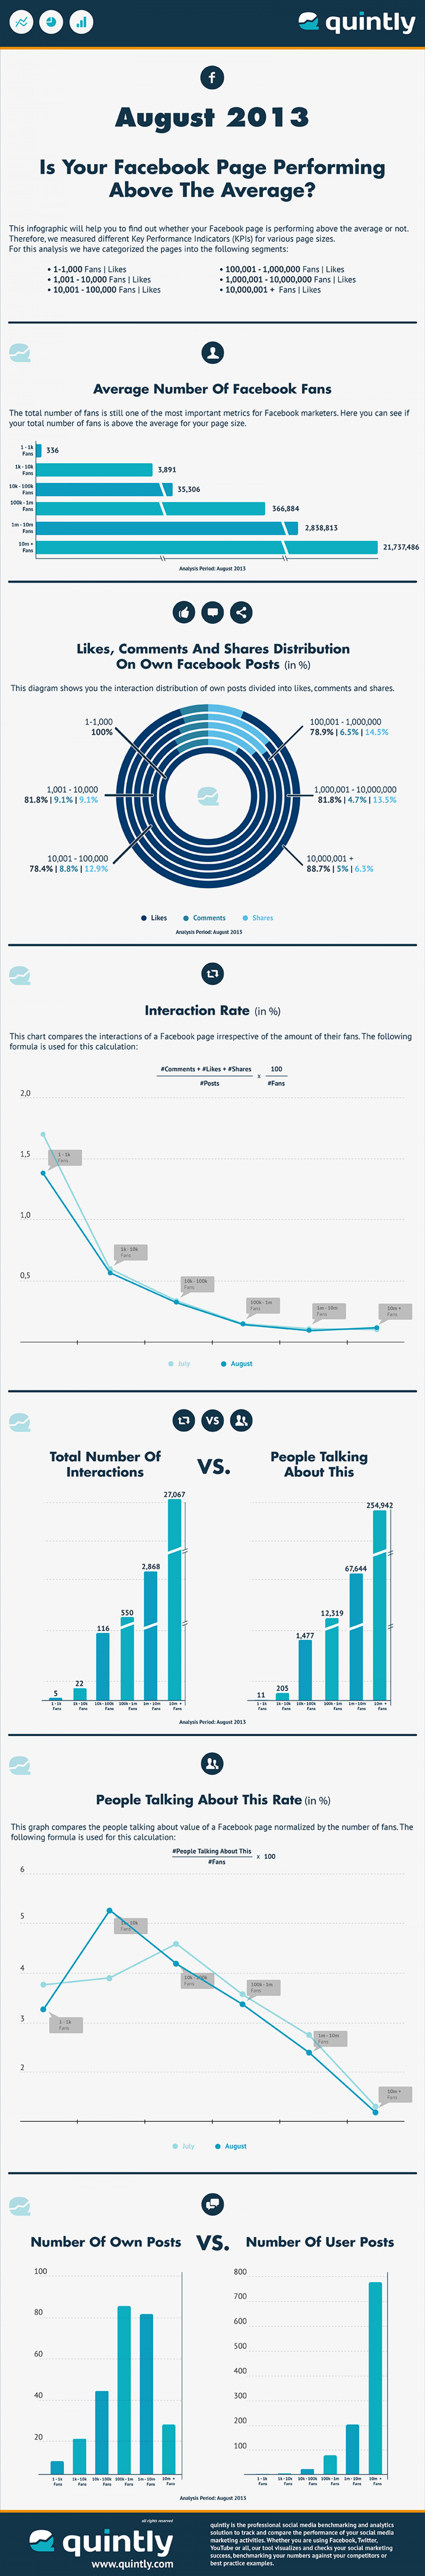 The Average Facebook Page Performance For August 2013 Infographic